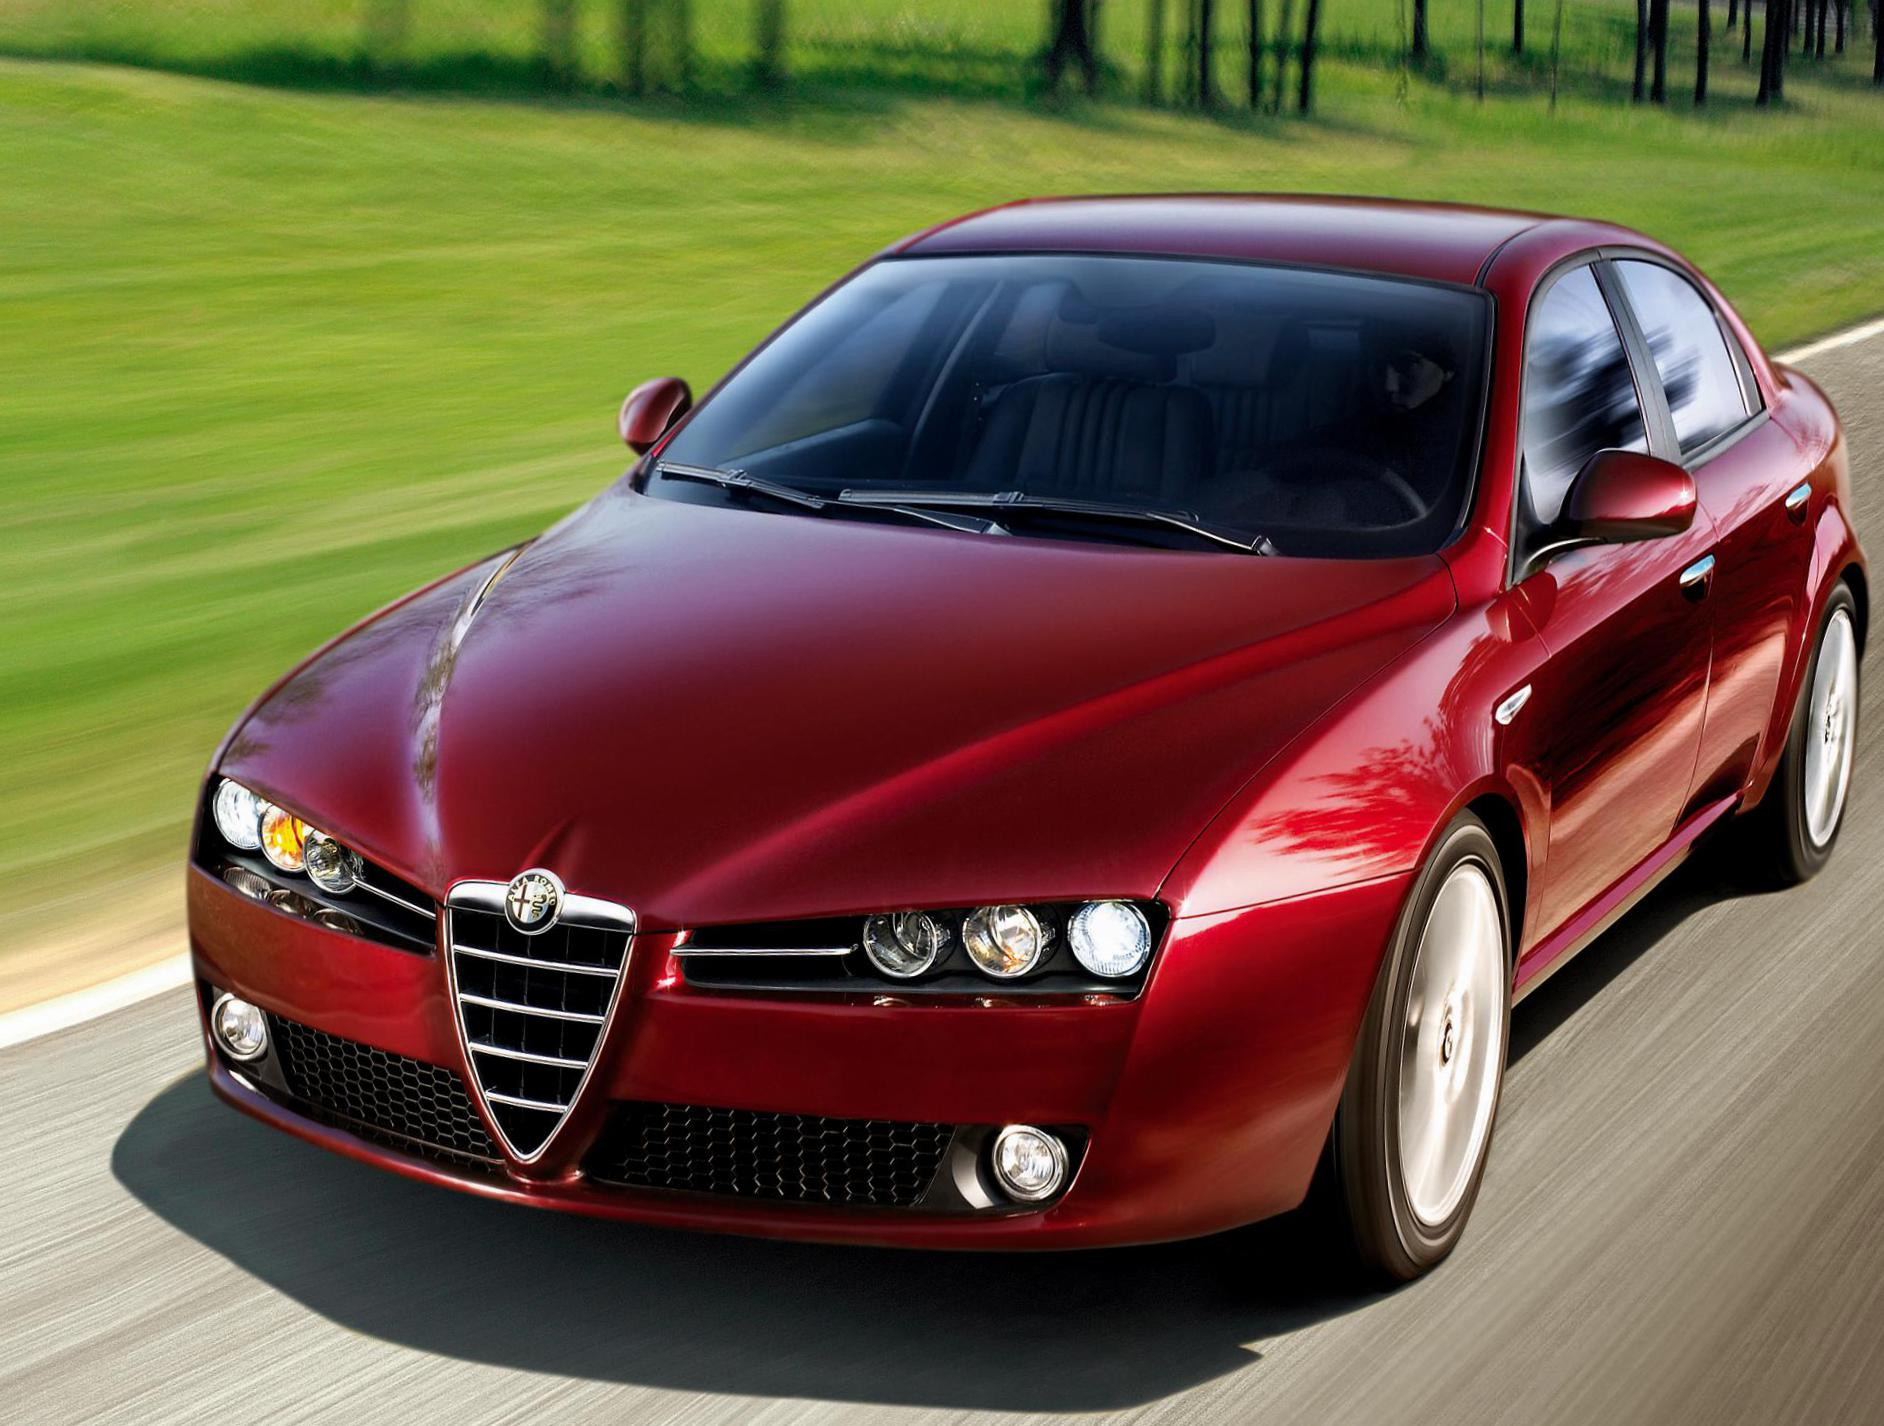 159 Sportwagon Alfa Romeo used sedan